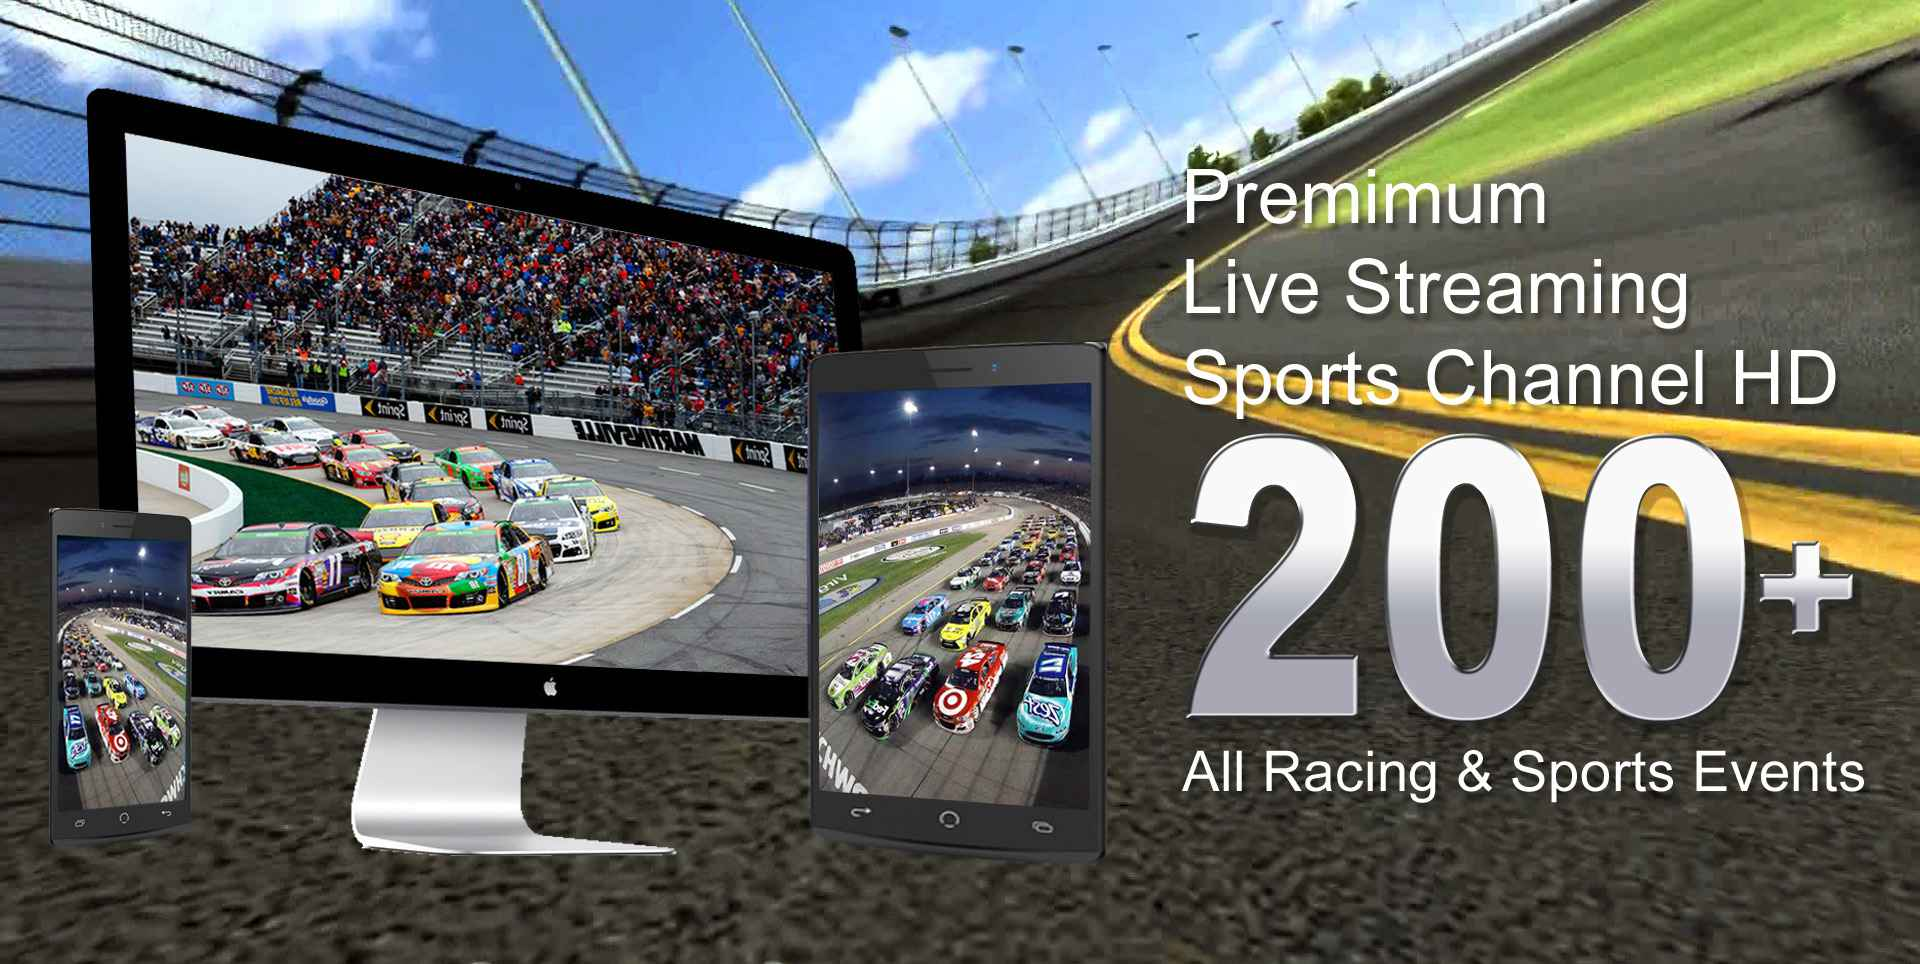 2018 Can-Am Duels at Daytona 2 Live Stream